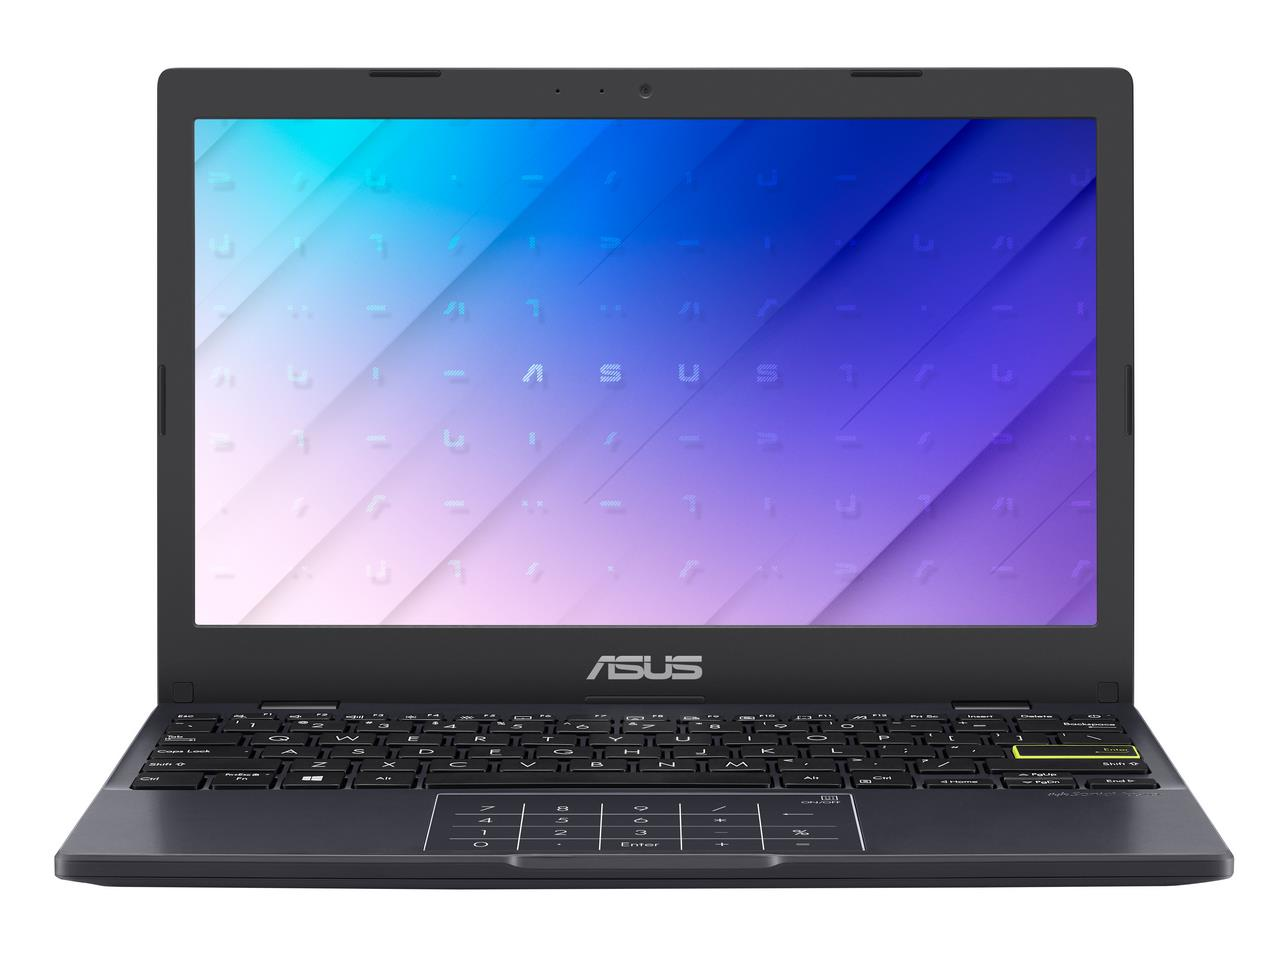 "E210MA-GJ001TS ASUS Laptop E210MA - 11,6"" HD/Celeron N4020/4GB/64G eMMC/W10 Home in S Mode (Peacock Blue/Plastic)"